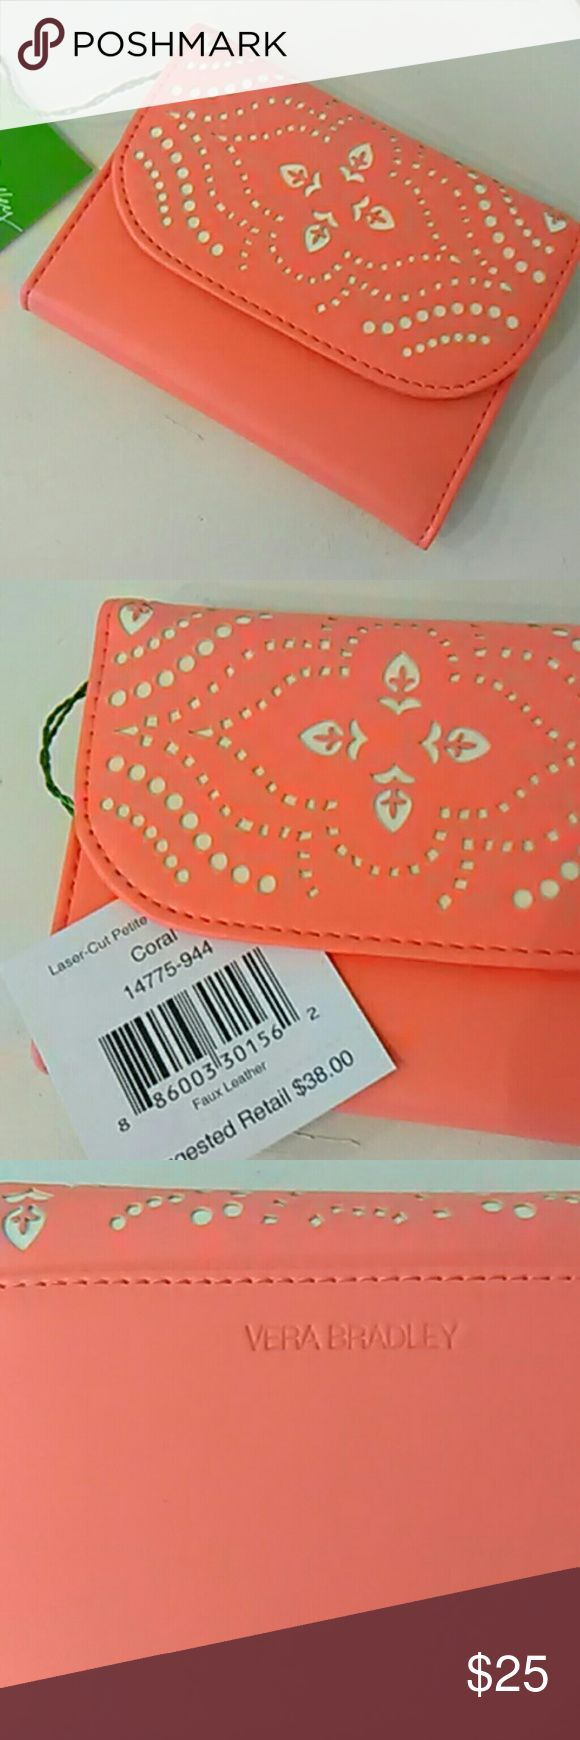 Coral laser-cut faux leather Vera Bradley wallet Brand new with tags, this is a petite trifold wallet in coral faux leather.  I have bags that match this, so check out my faux leather collection by Vera Bradley.  I will add this wallet to any of my bags for only $10.  If you would like a bundle, just ask. Vera Bradley Bags Wallets